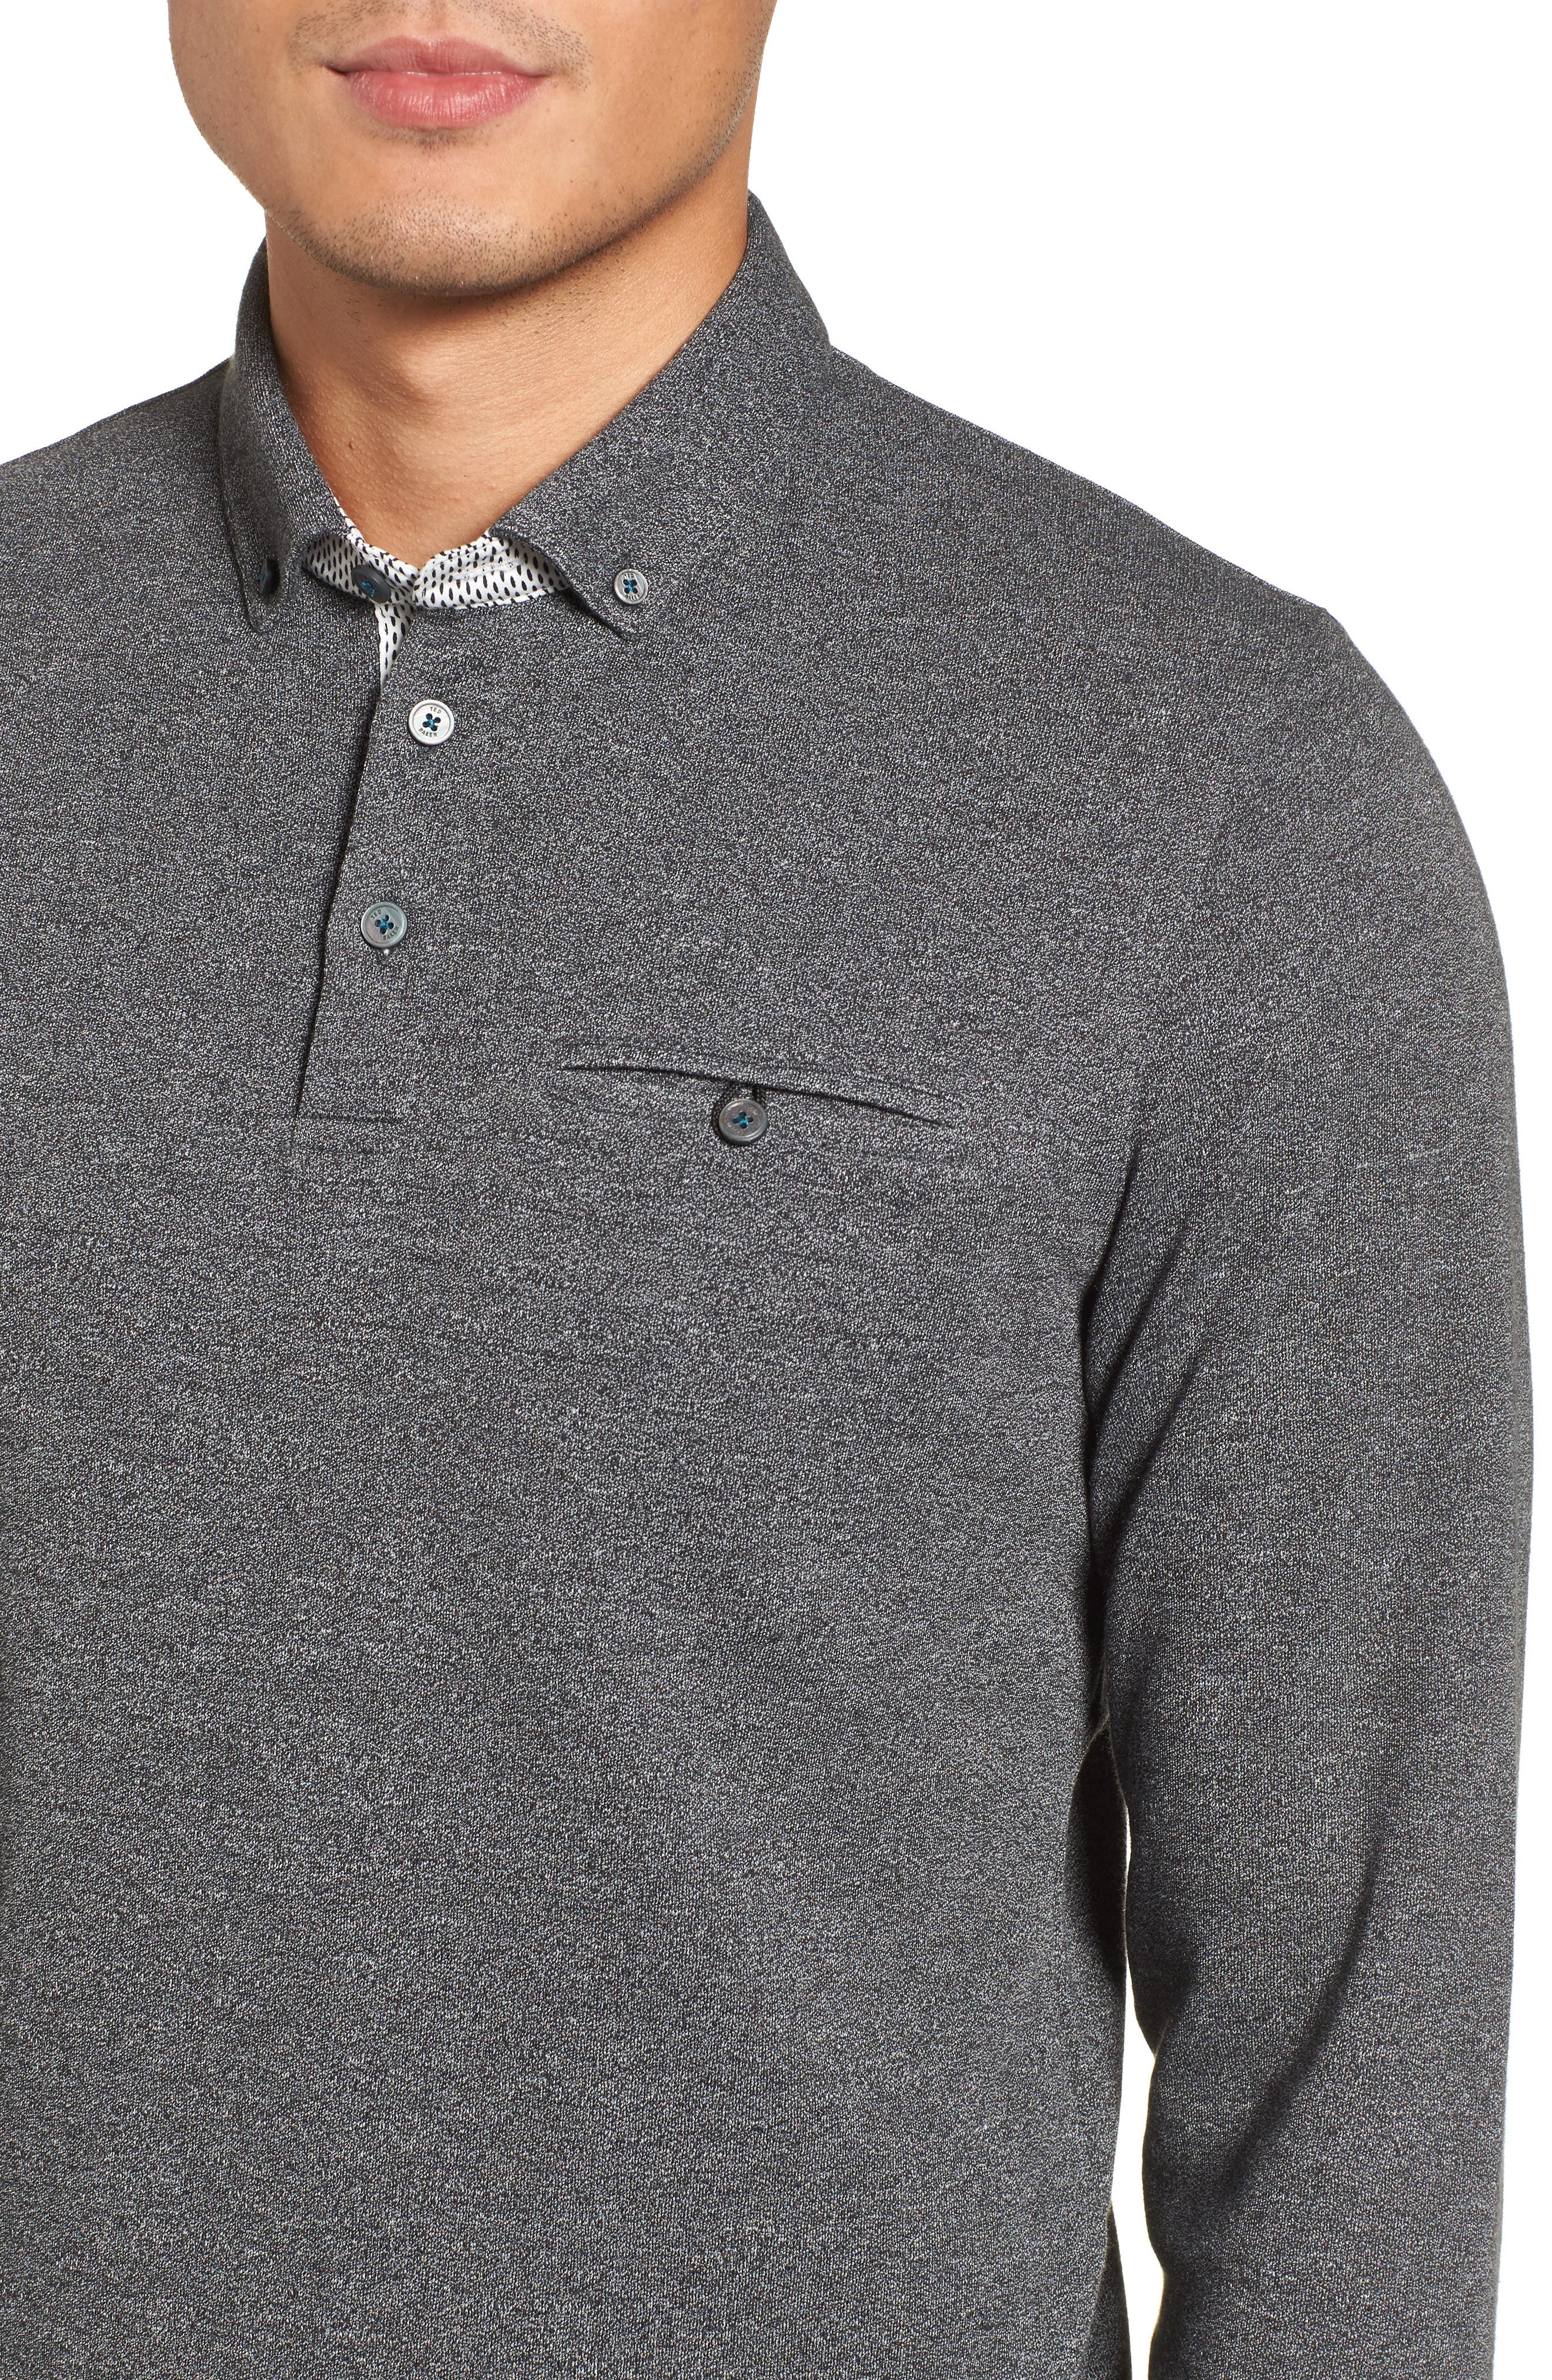 Yamway Modern Slim Fit Long Sleeve Polo,                             Alternate thumbnail 10, color,